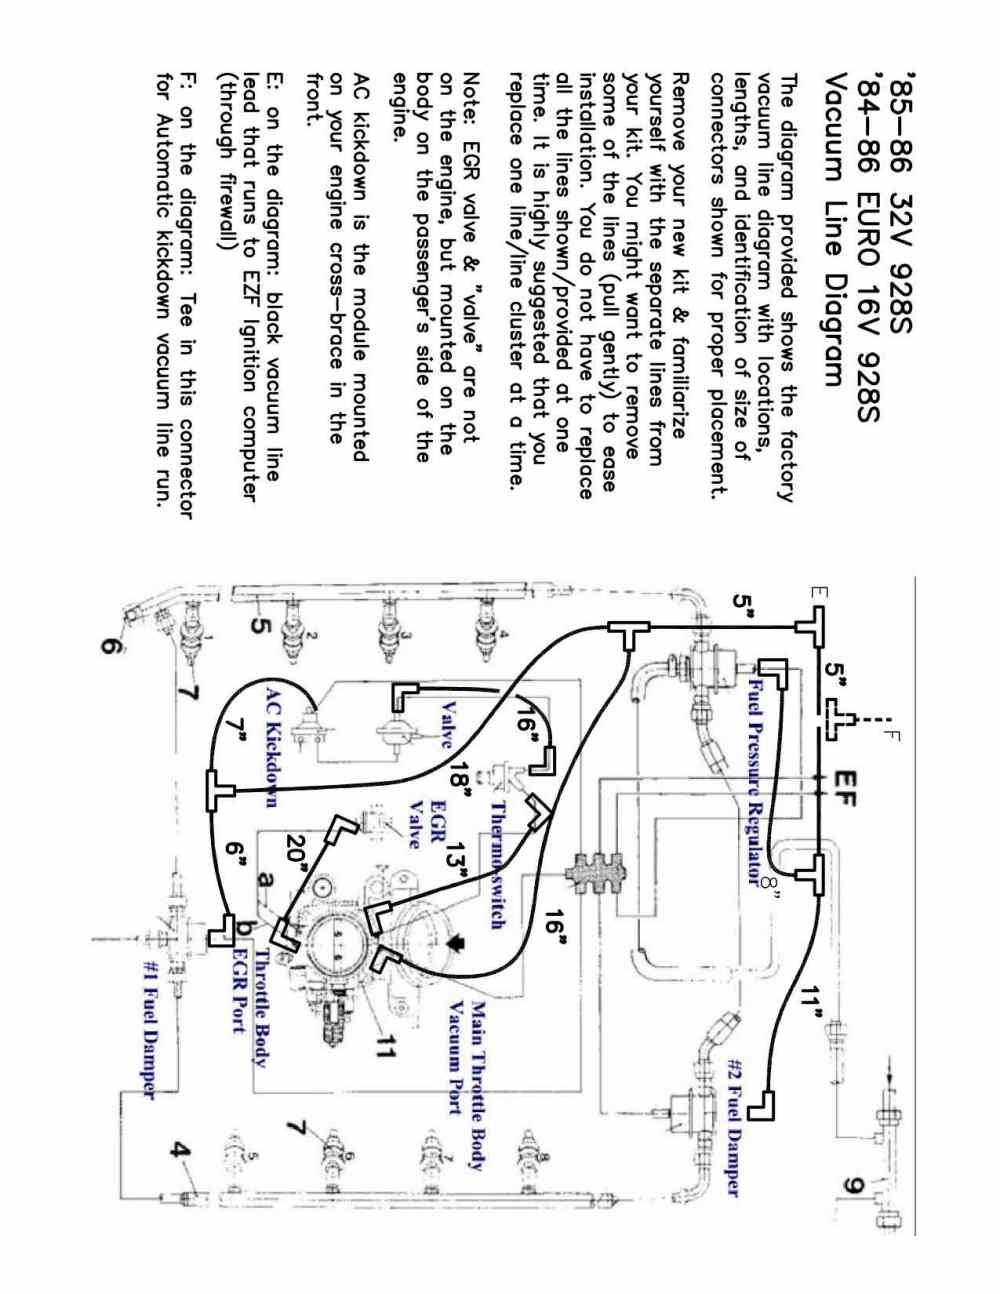 medium resolution of 1988 porsche 944 fuse box porsche auto fuse box diagram porsche 944 emblem